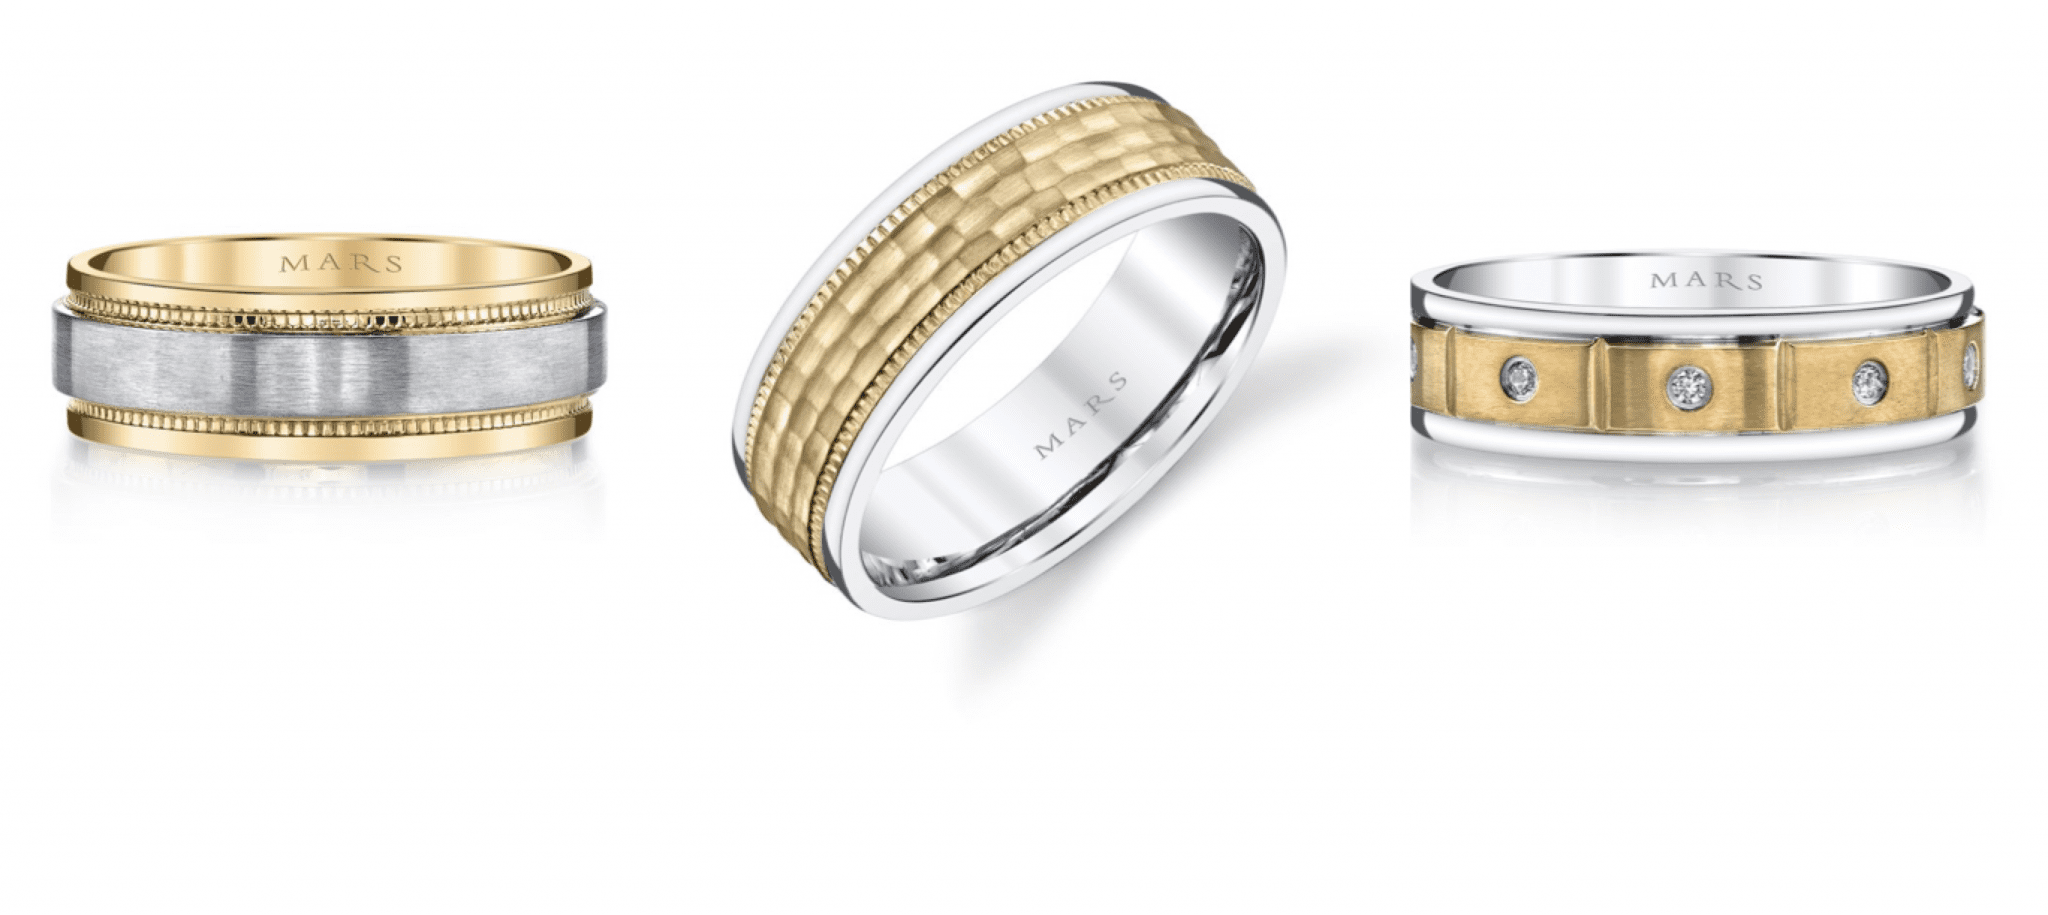 Gold wedding bands are making a comeback | Mark\'s Diamonds ...